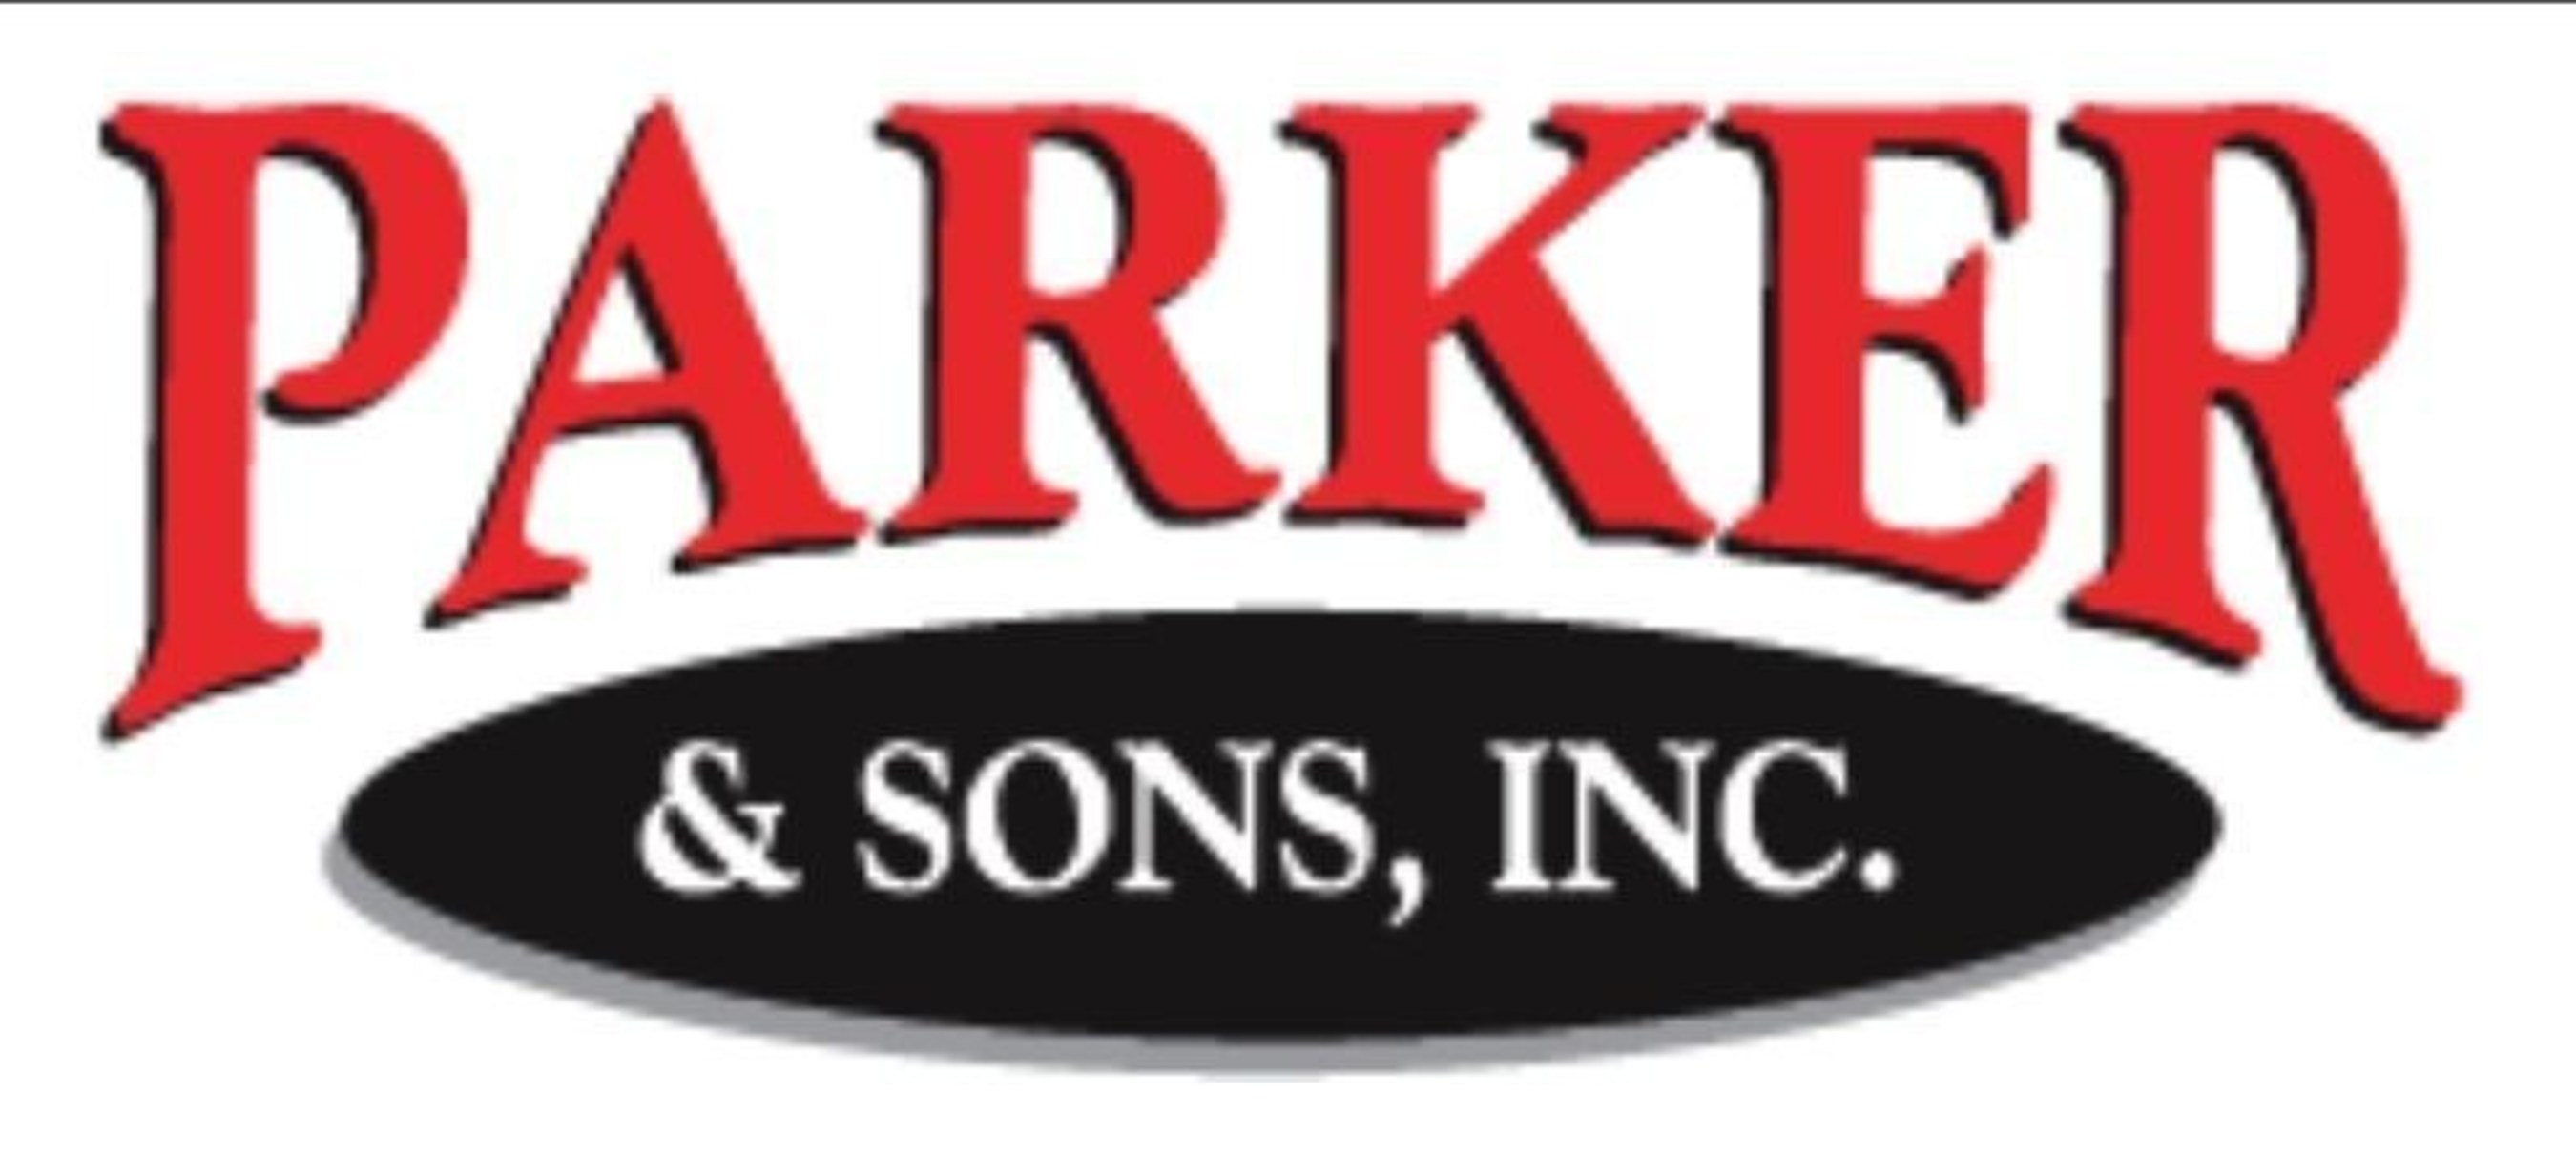 Parker & Sons Offers Coupon for Free Air Conditioning, Heating, or Plumbing Diagnostics With Any Repair